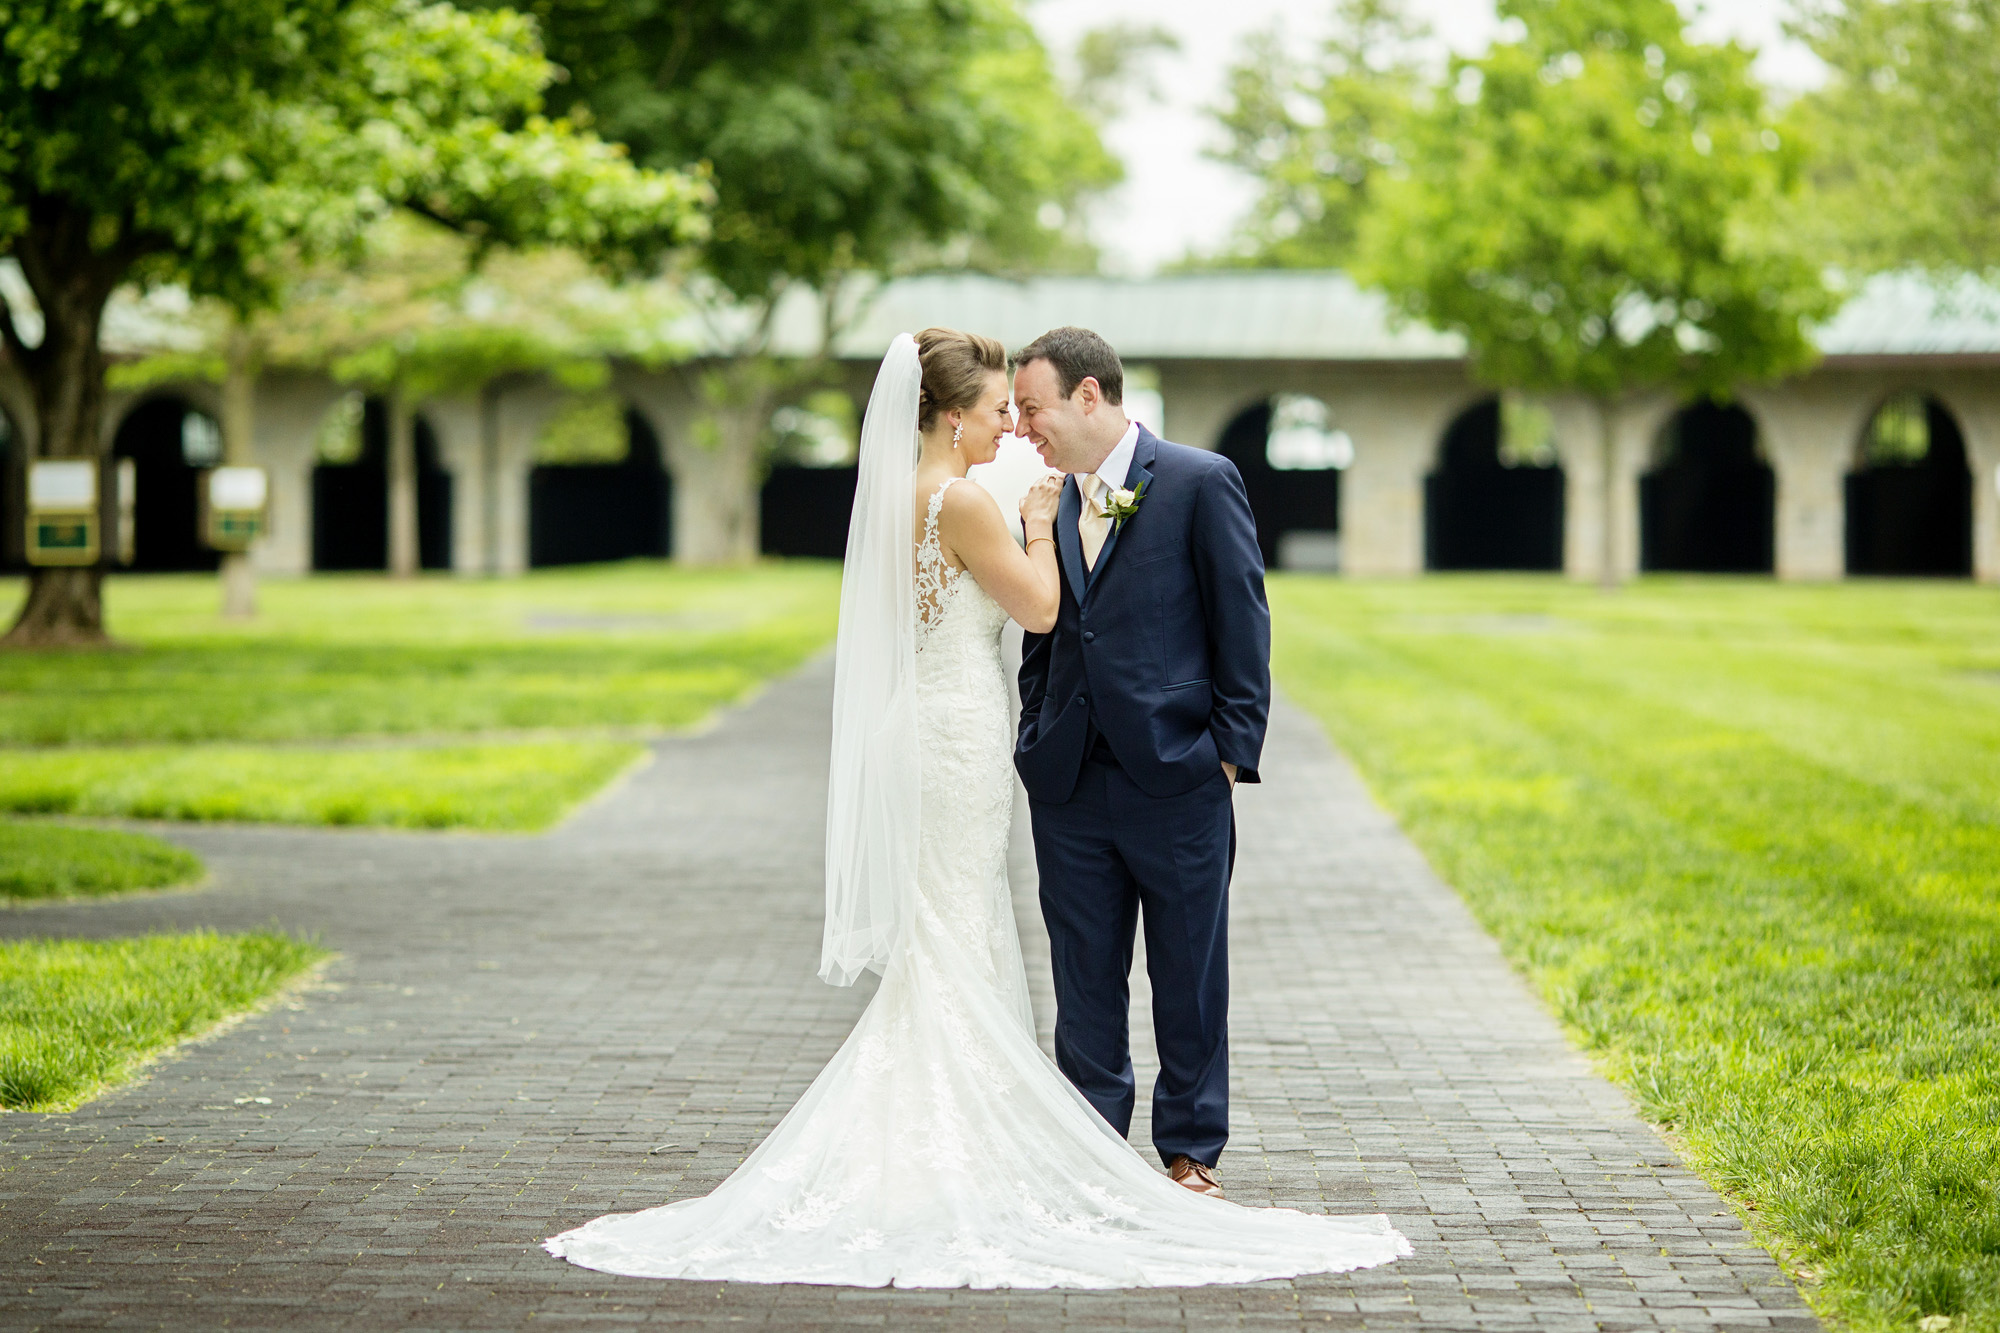 Seriously_Sabrina_Photography_Lexington_Kentucky_Downtown_Keeneland_Clubhouse_Wedding_Spitzer_44.jpg